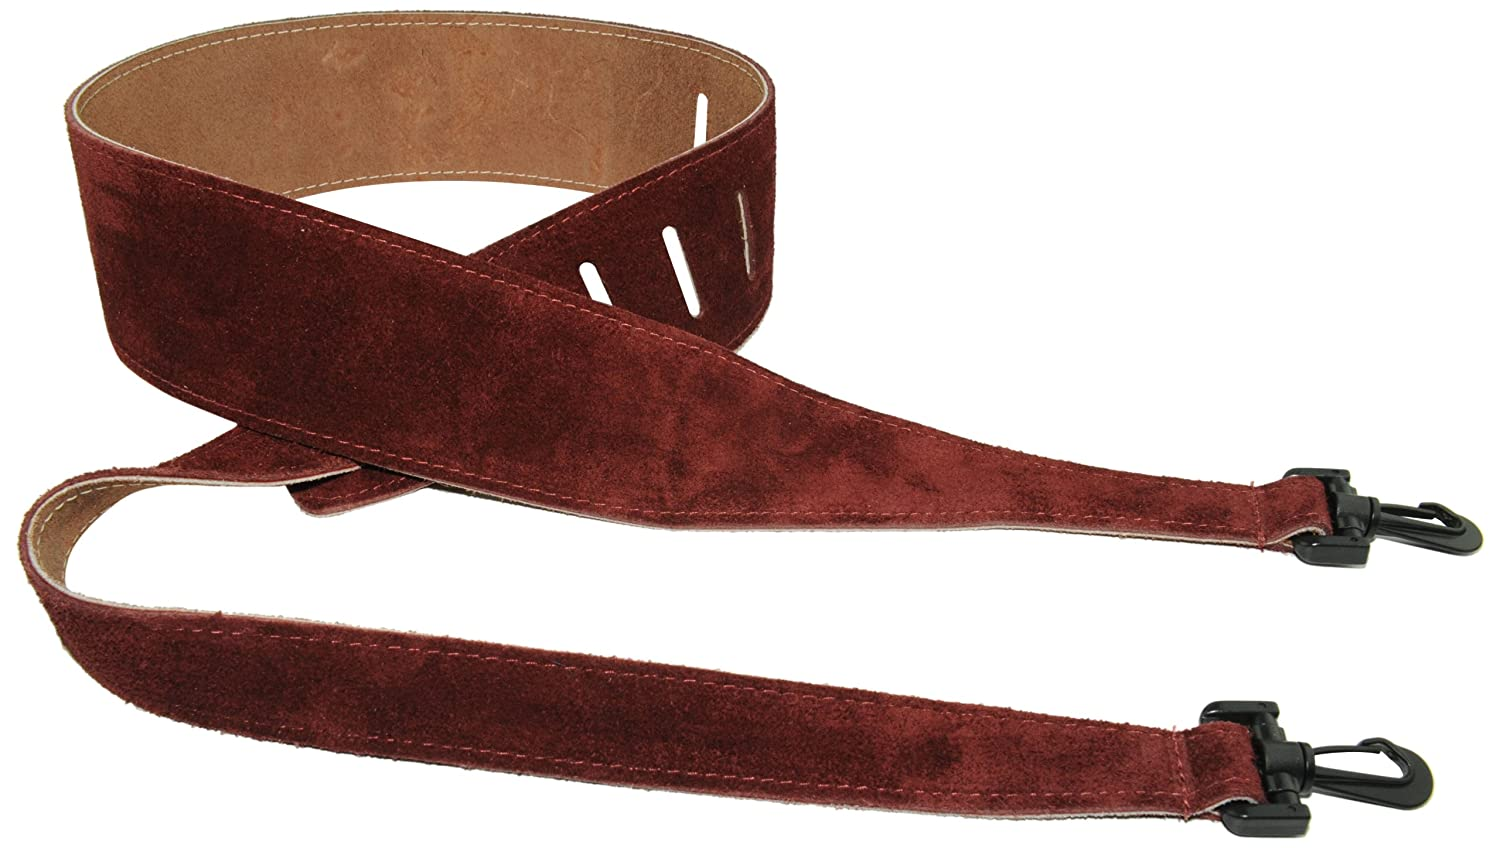 Perris Leathers P25SBJ-210 2.5-Inch Soft Suede Banjo Strap Perris Leathers LTD